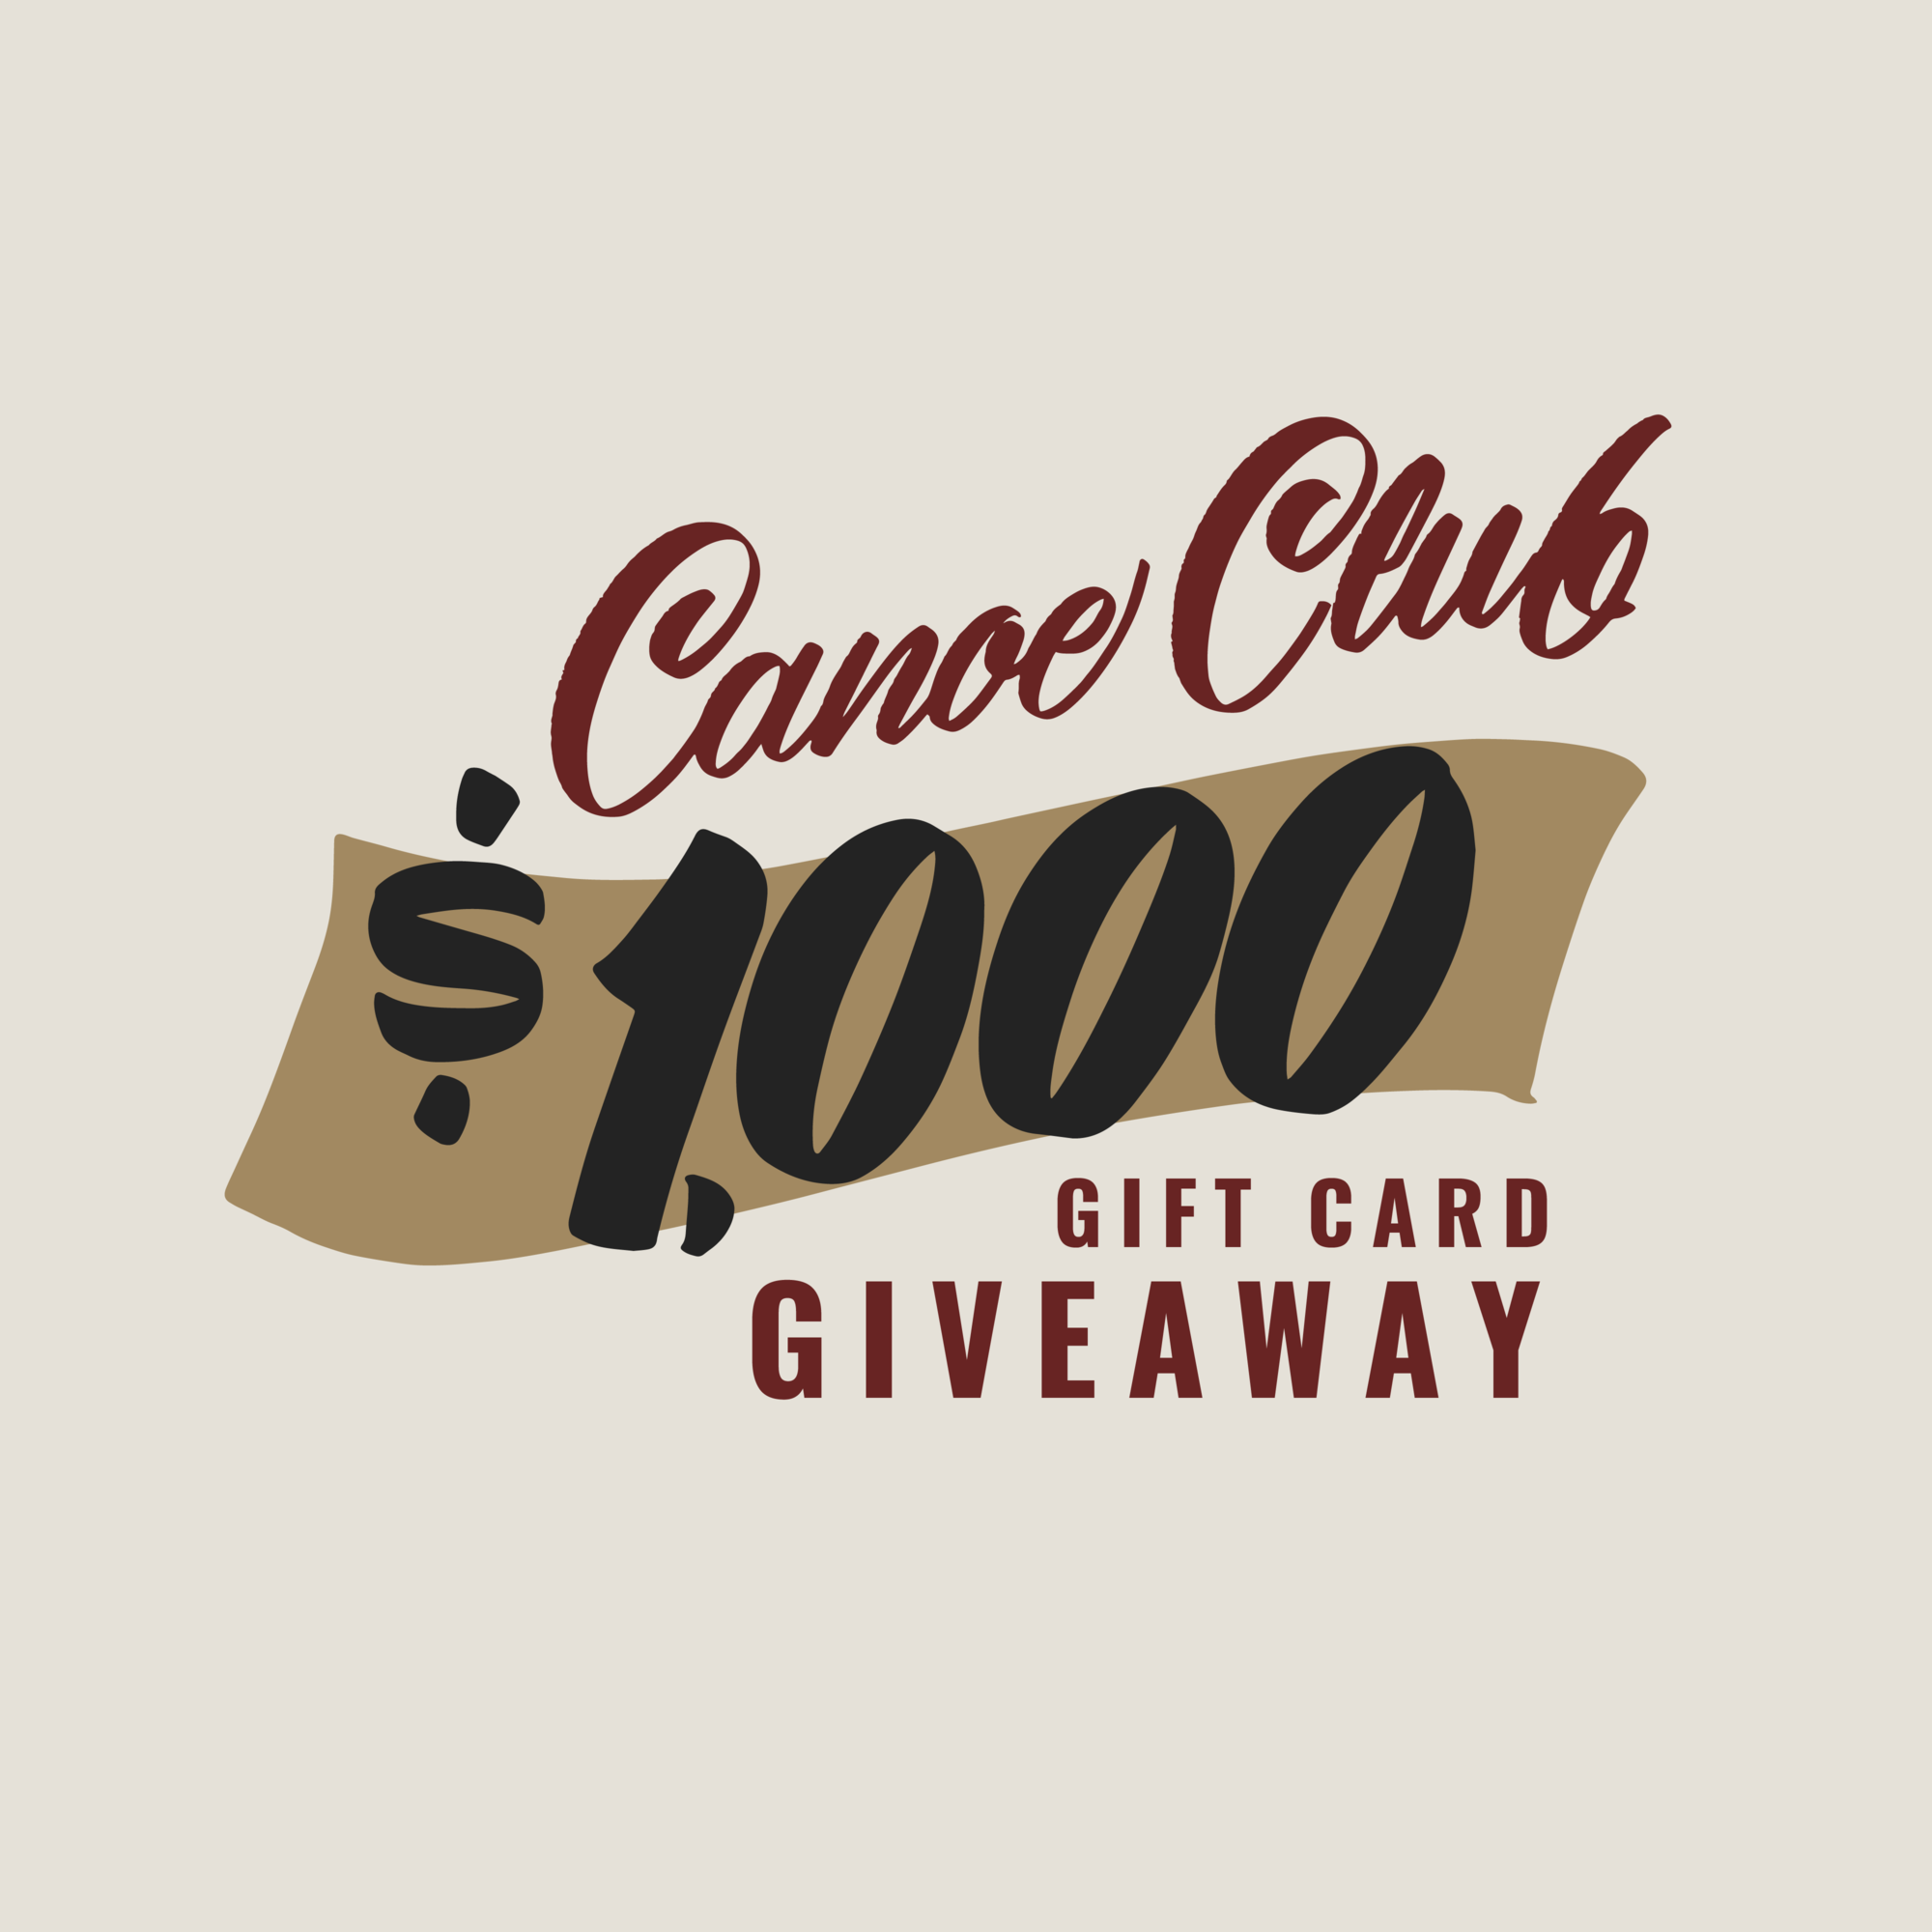 $1000 Giveaway-01.png